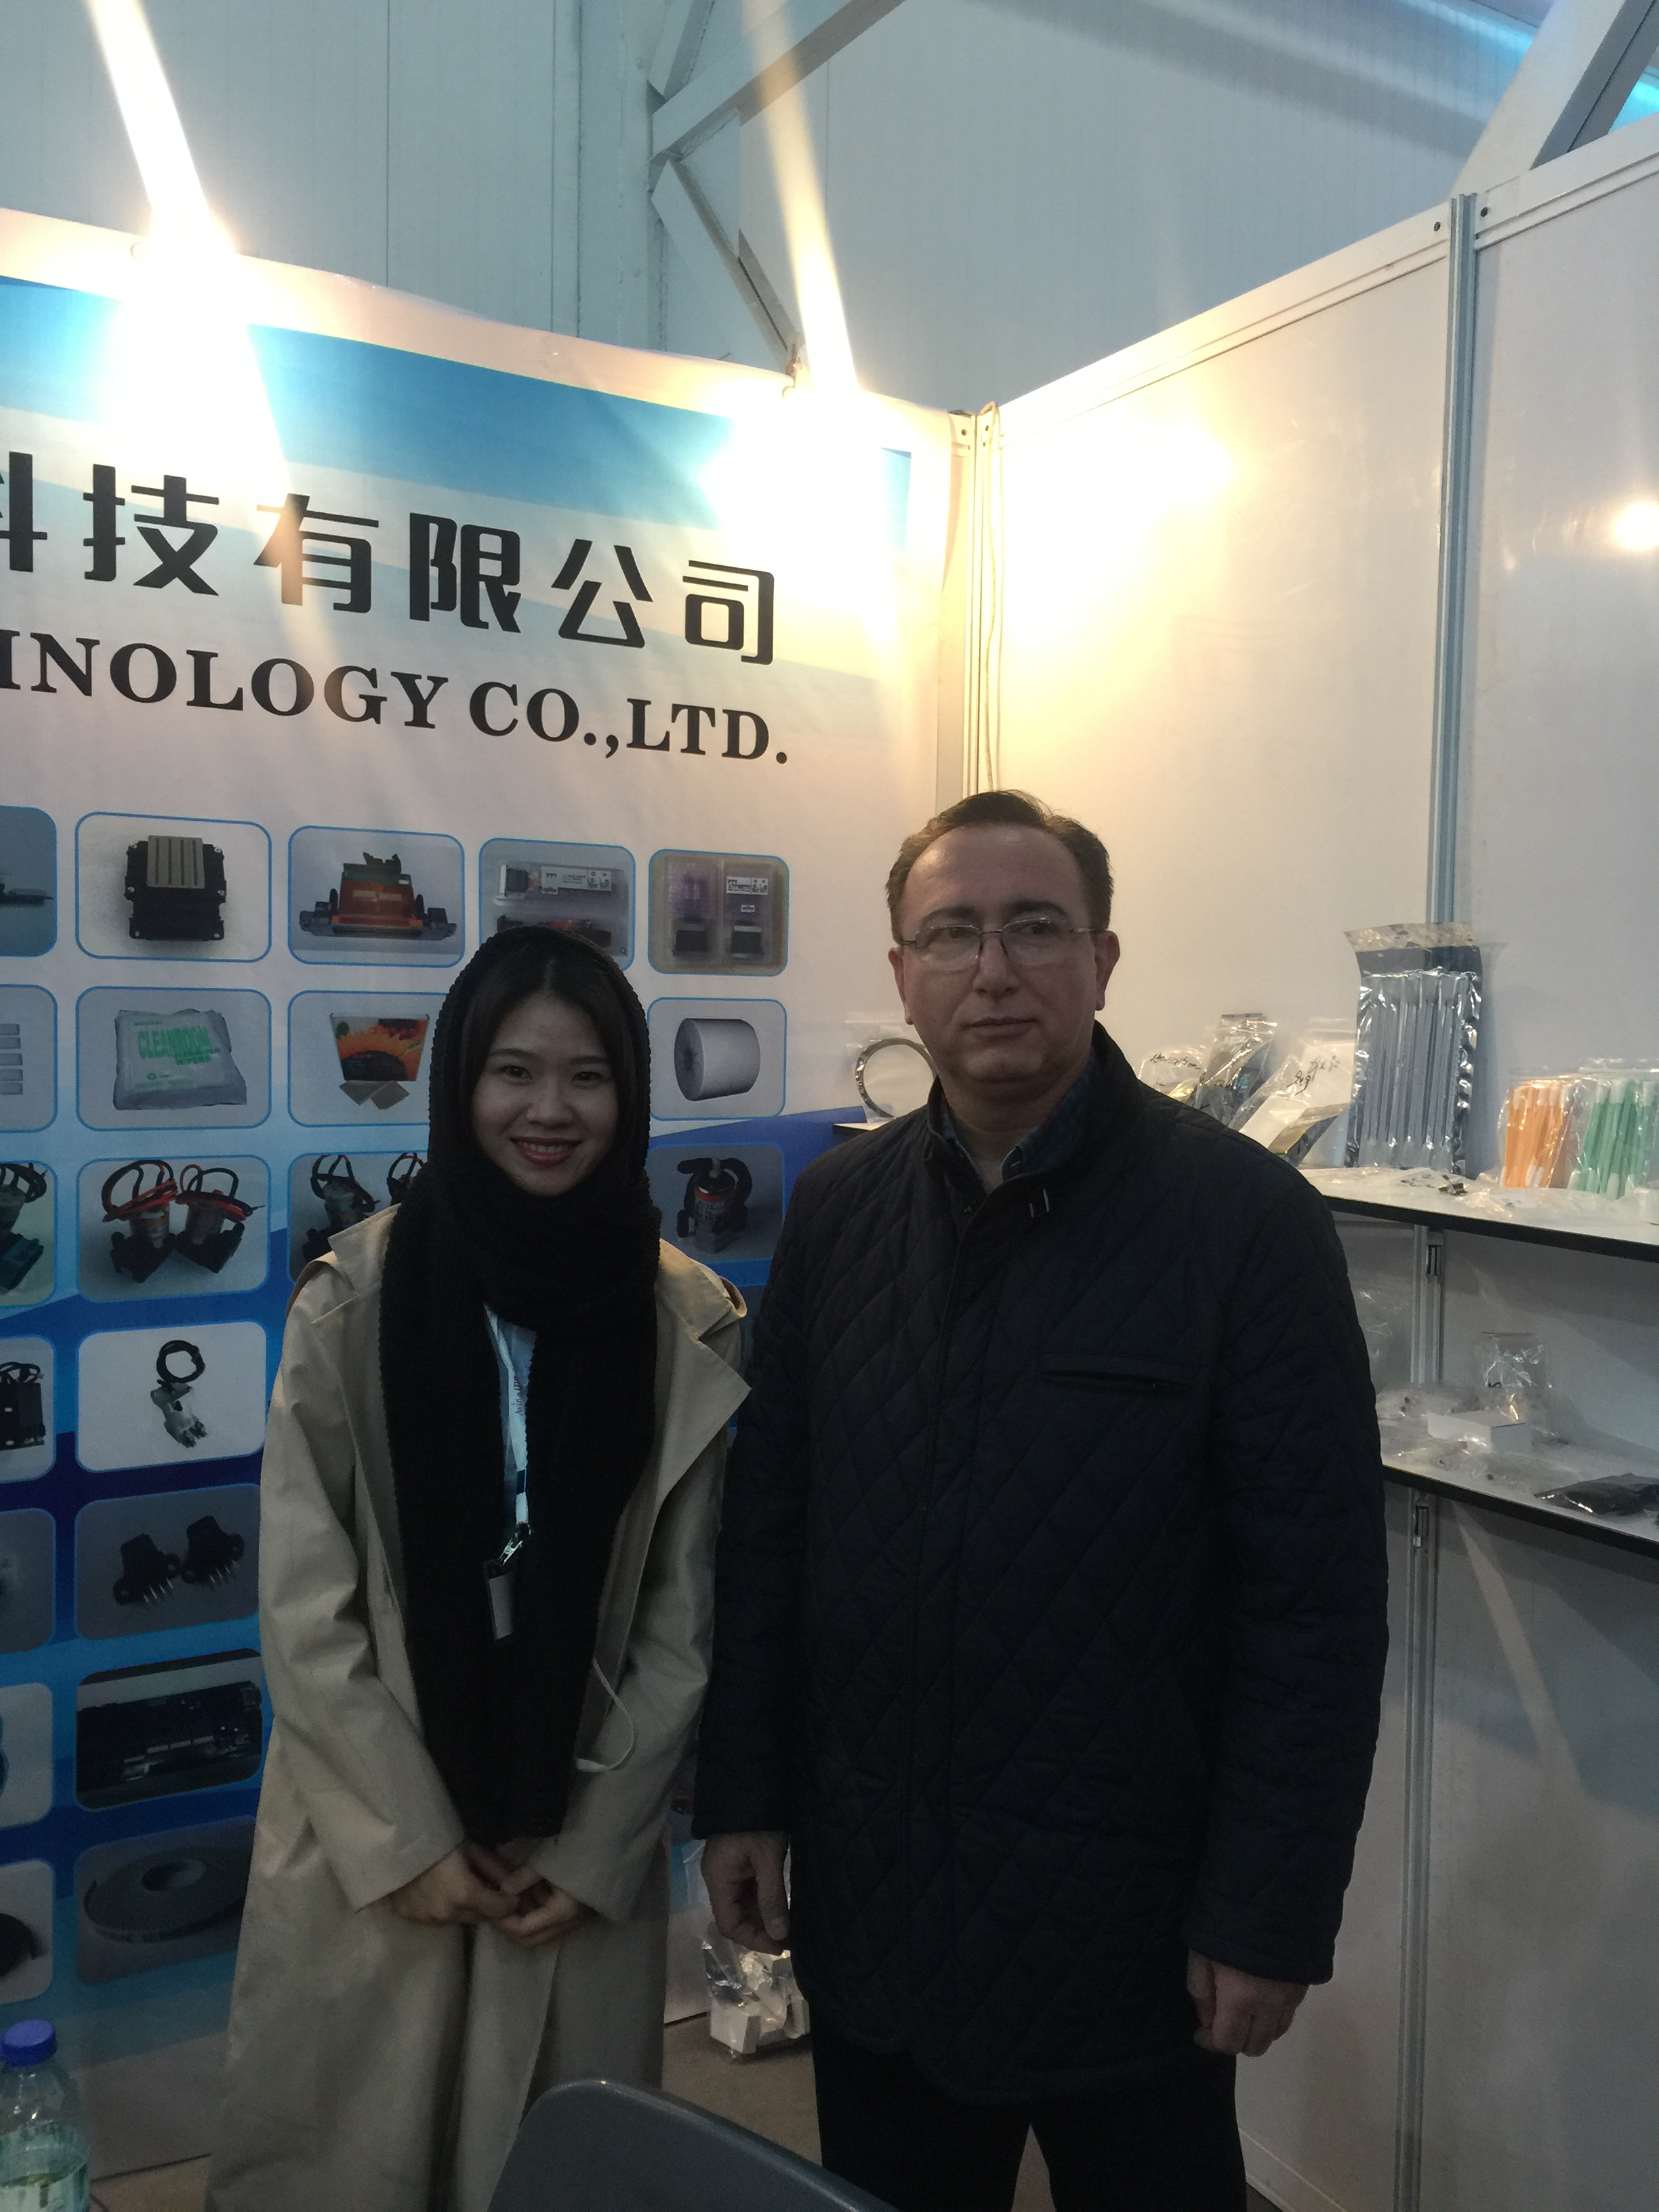 during printing expo